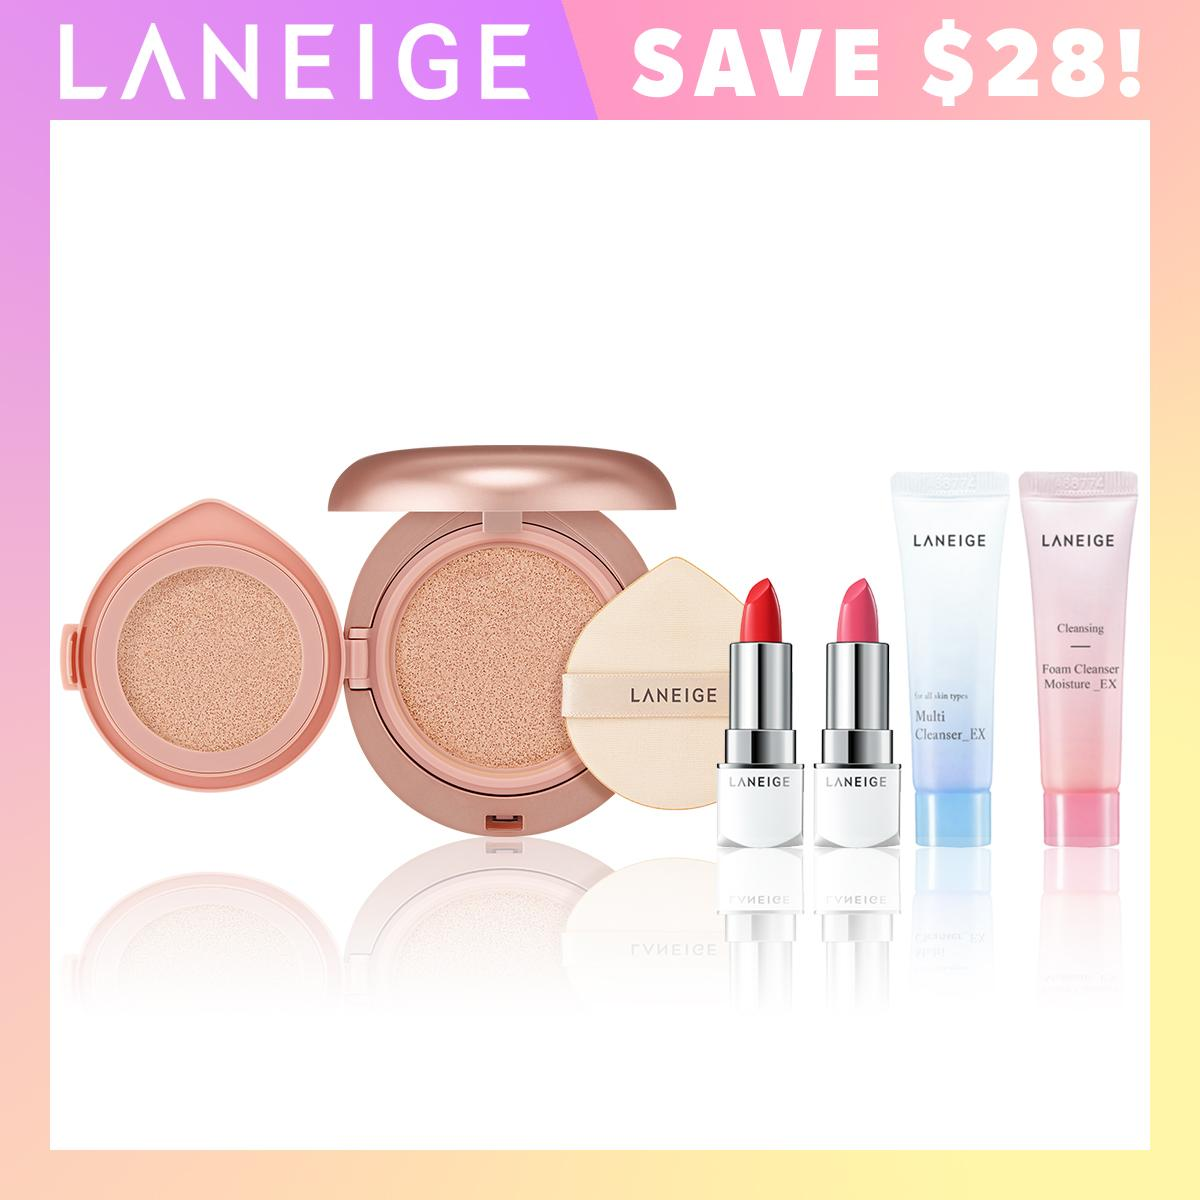 Retail Price Gss Special Laneige Layering Cover Cushion Concealing Base Select From 7 Shades